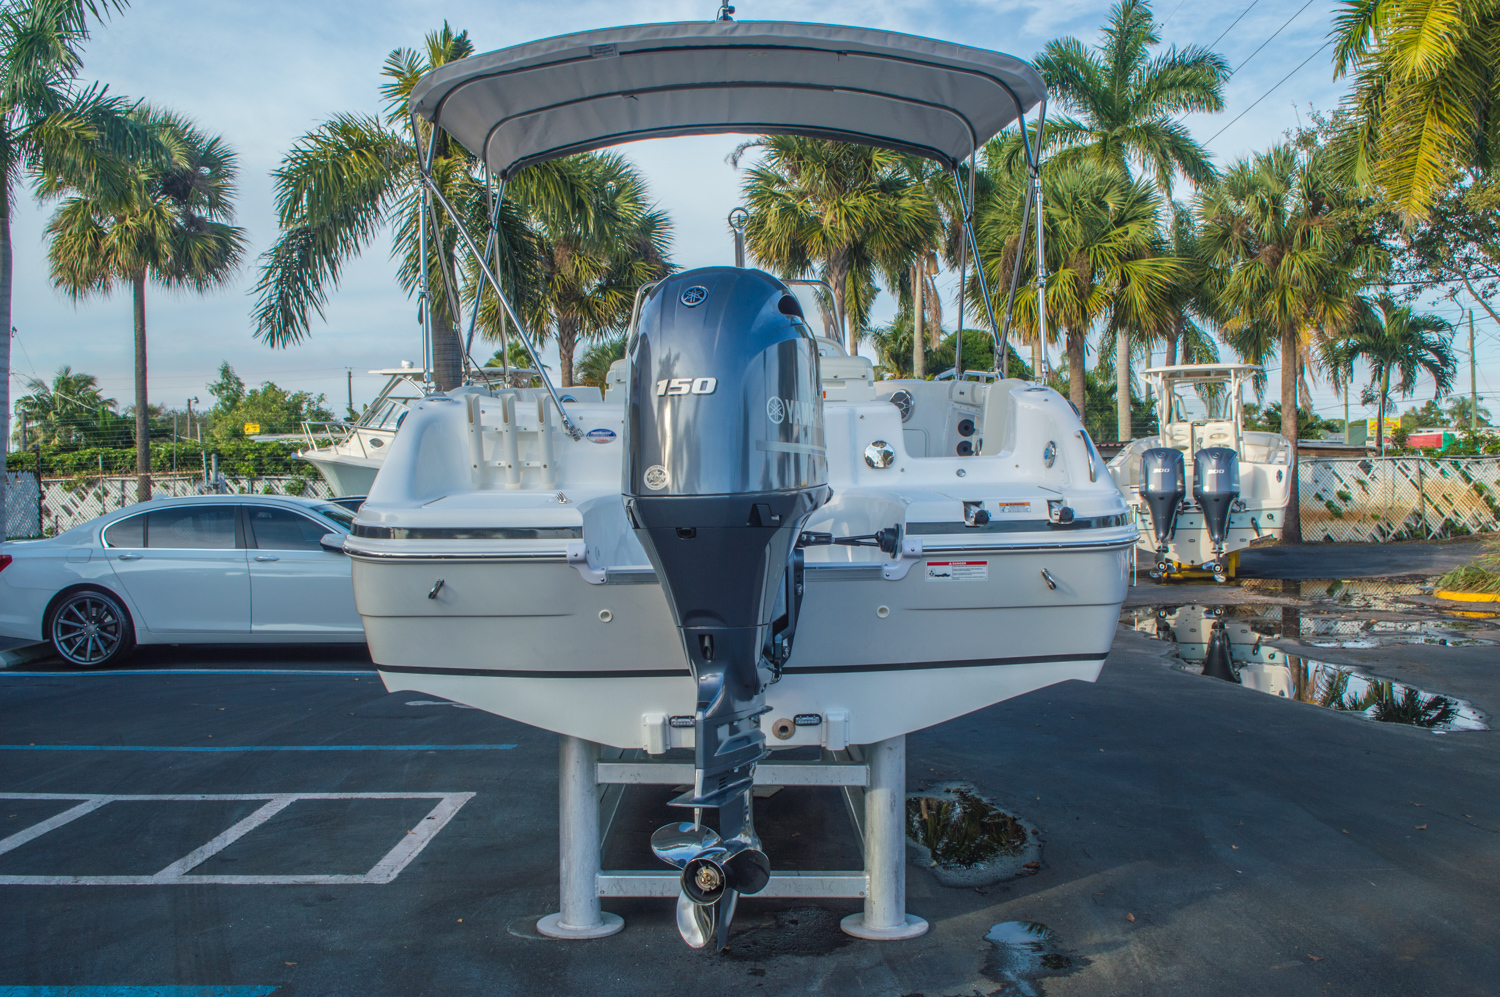 Thumbnail 6 for New 2016 Hurricane CC211 Center Consle boat for sale in West Palm Beach, FL